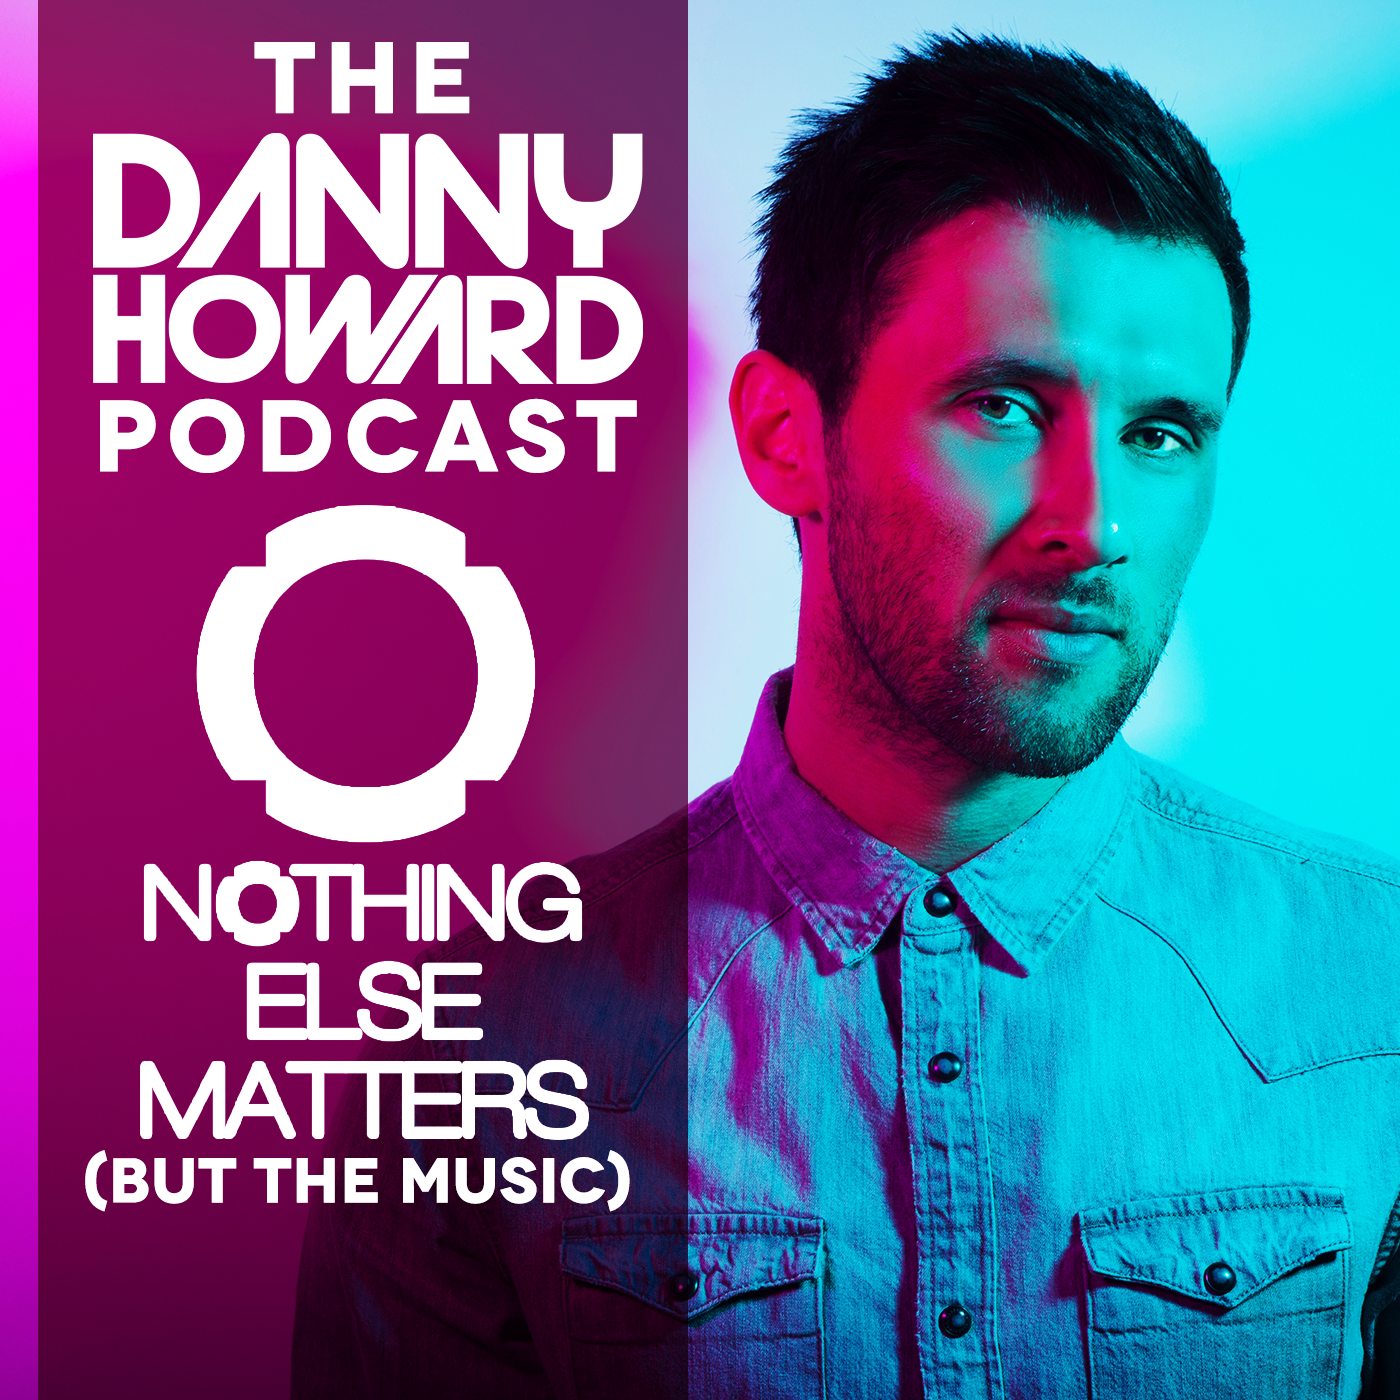 The Danny Howard Podcast – Episode 13